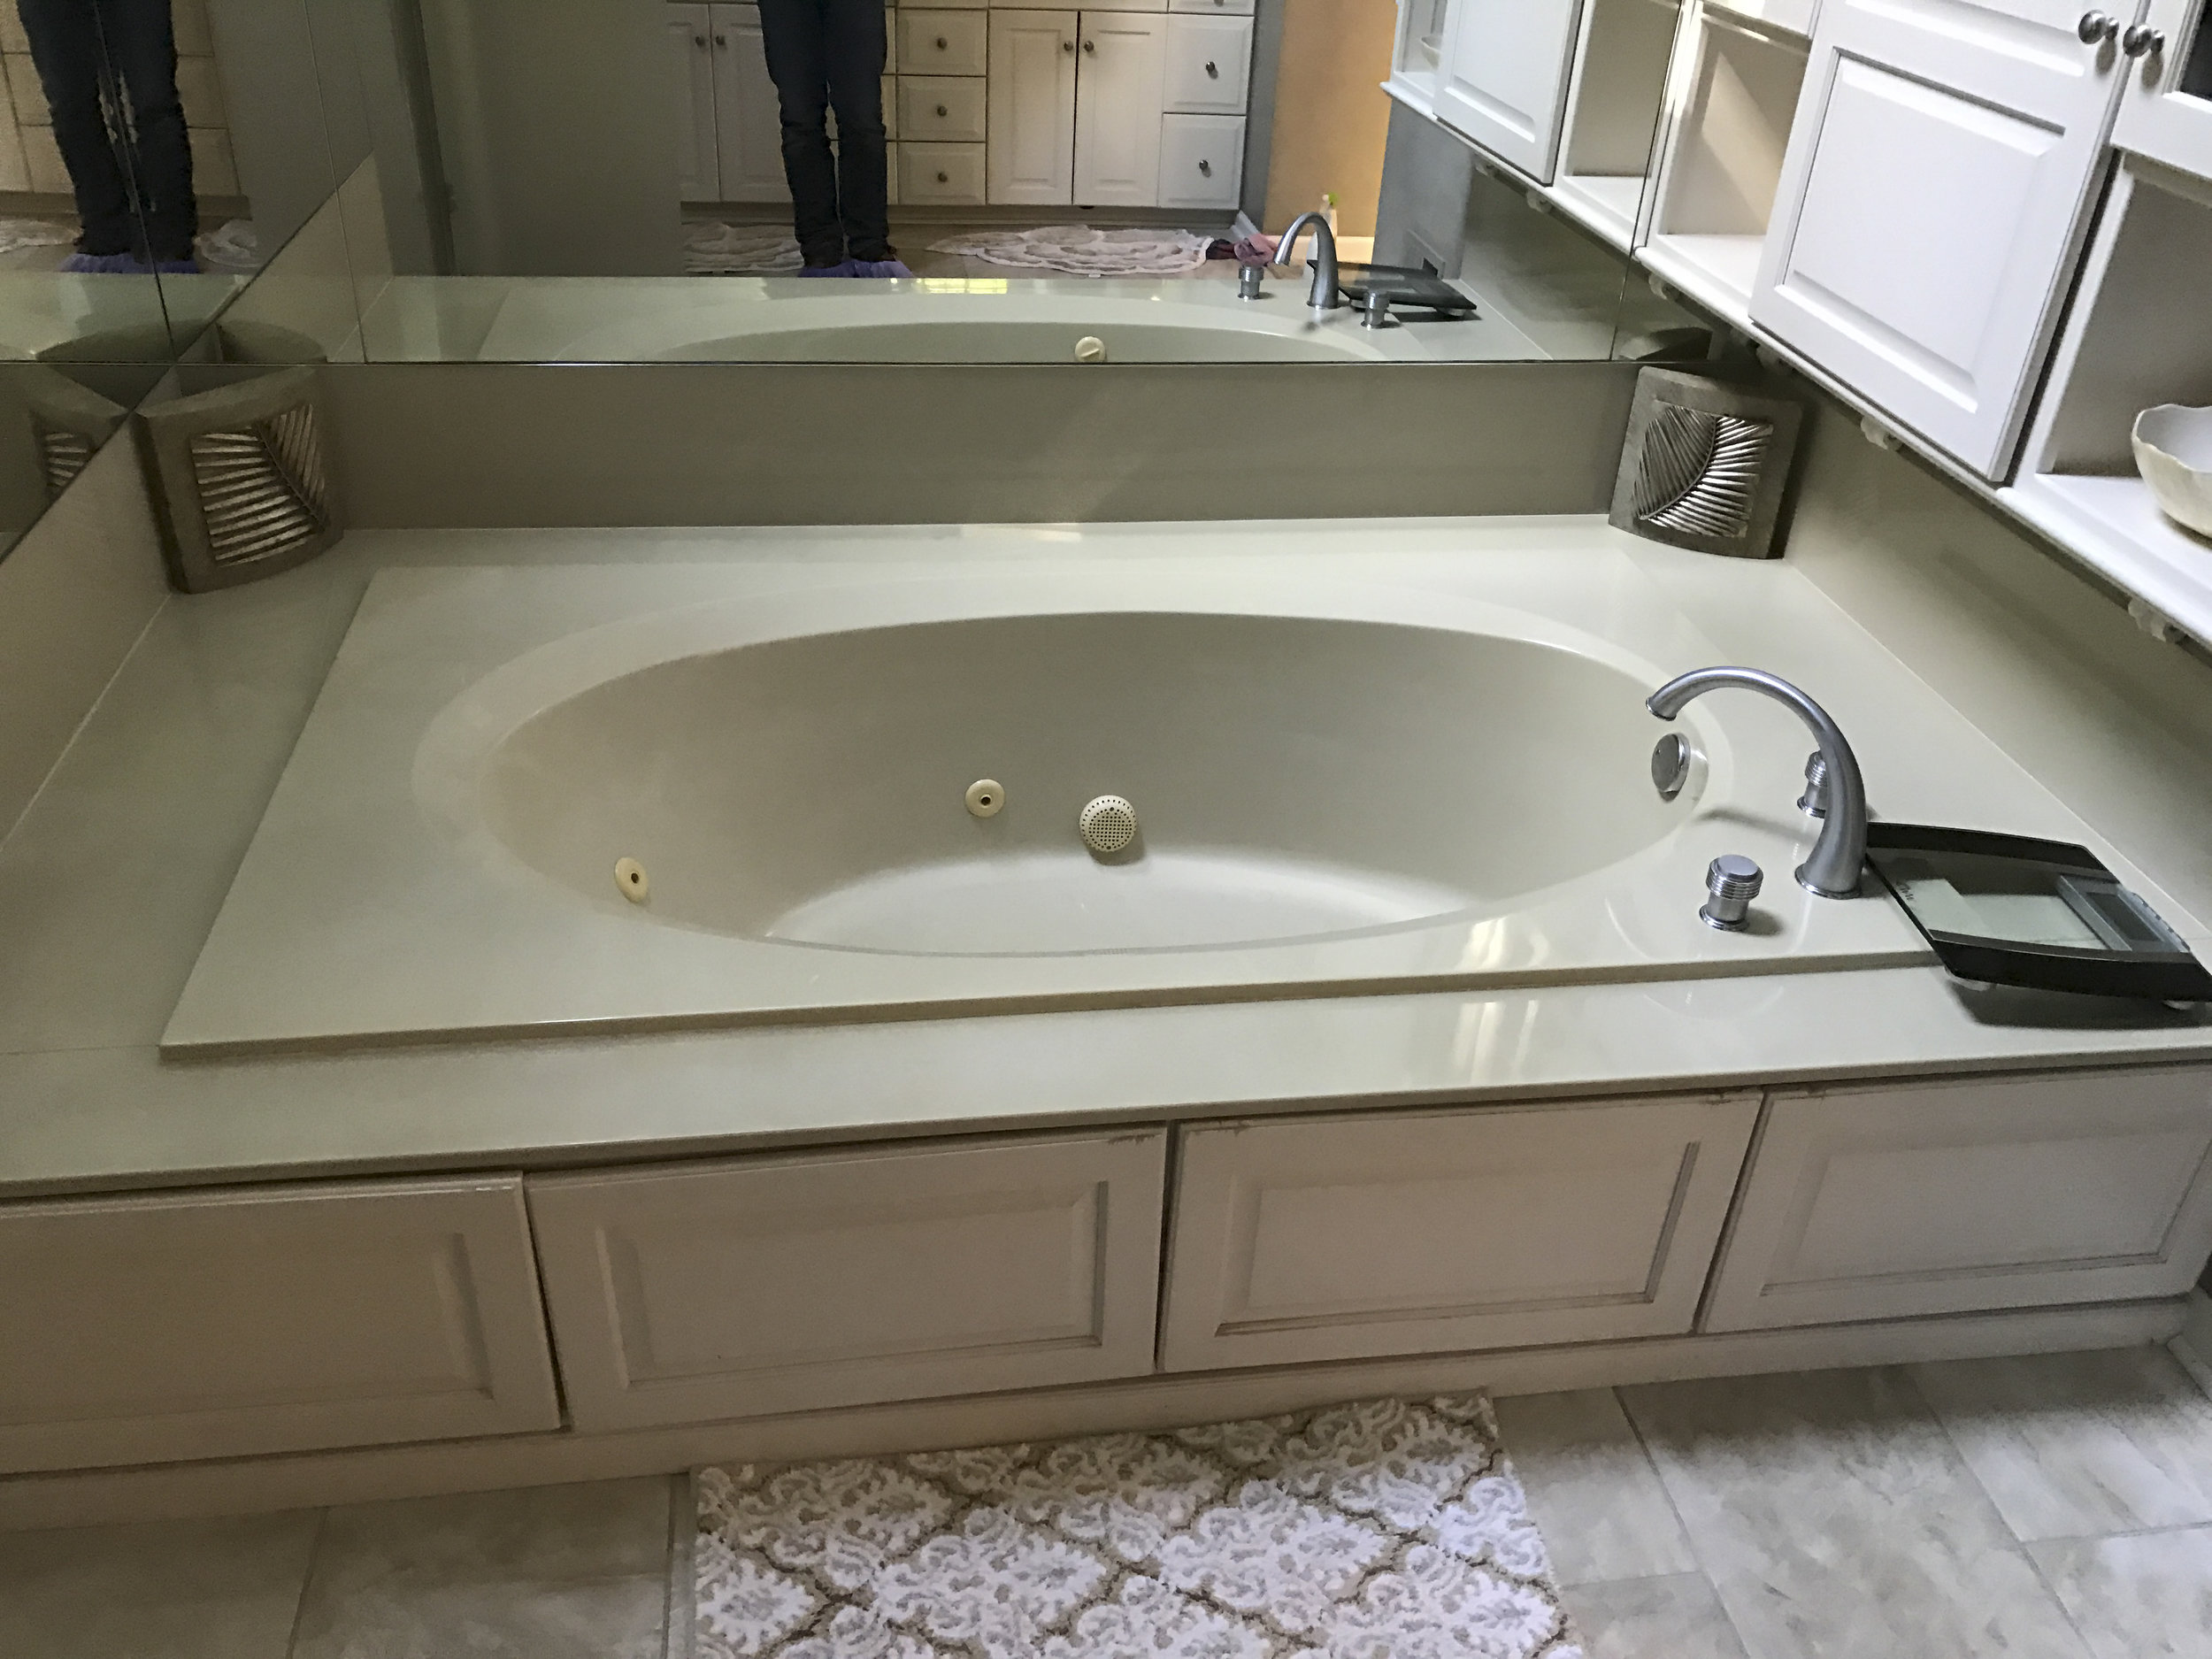 Existing jacuzzi tub. To be replaced with free-standing, soaking tub.